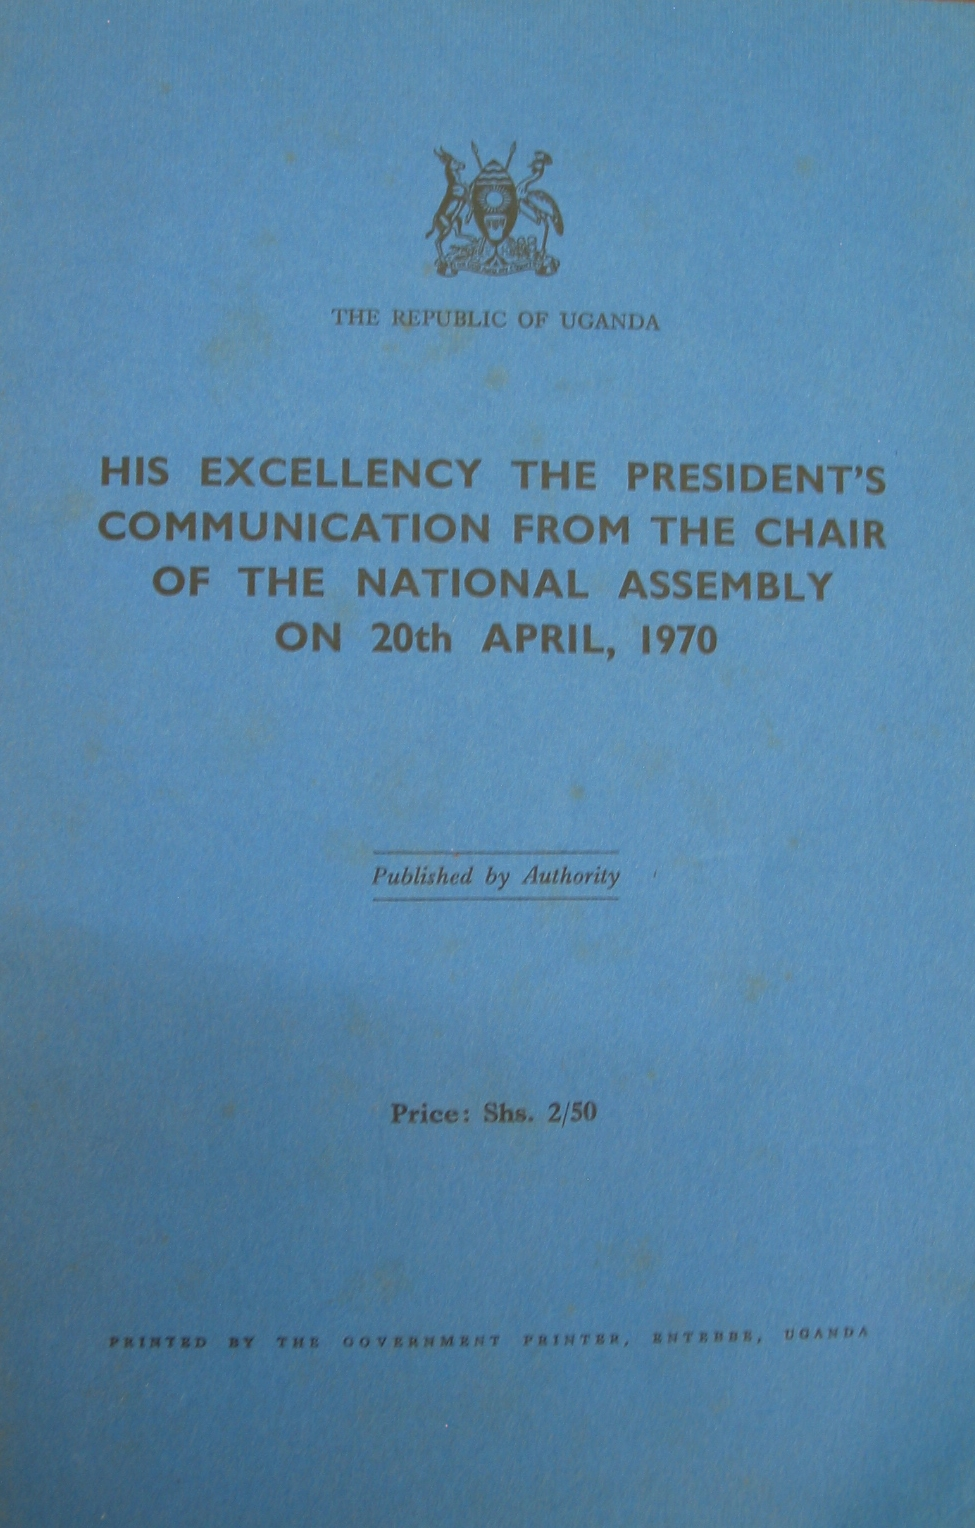 Source: Uganda National Archives